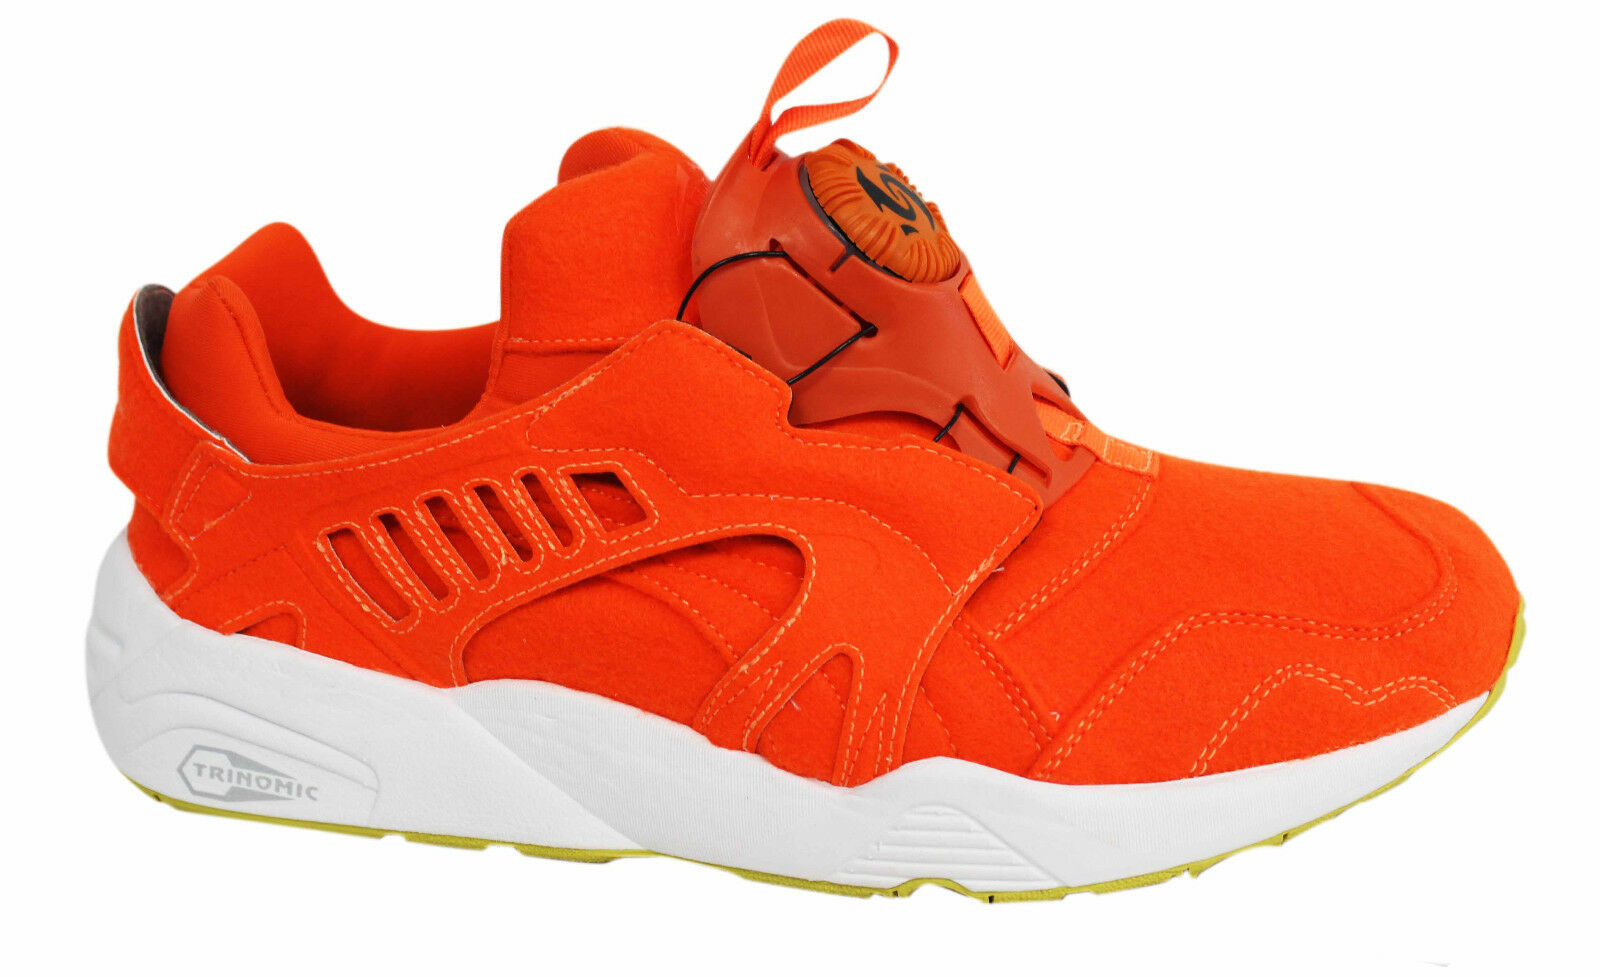 Puma Trinomic Disc Blaze Orange Felt Mens Trainers Slip On Shoes 359361 01 P2